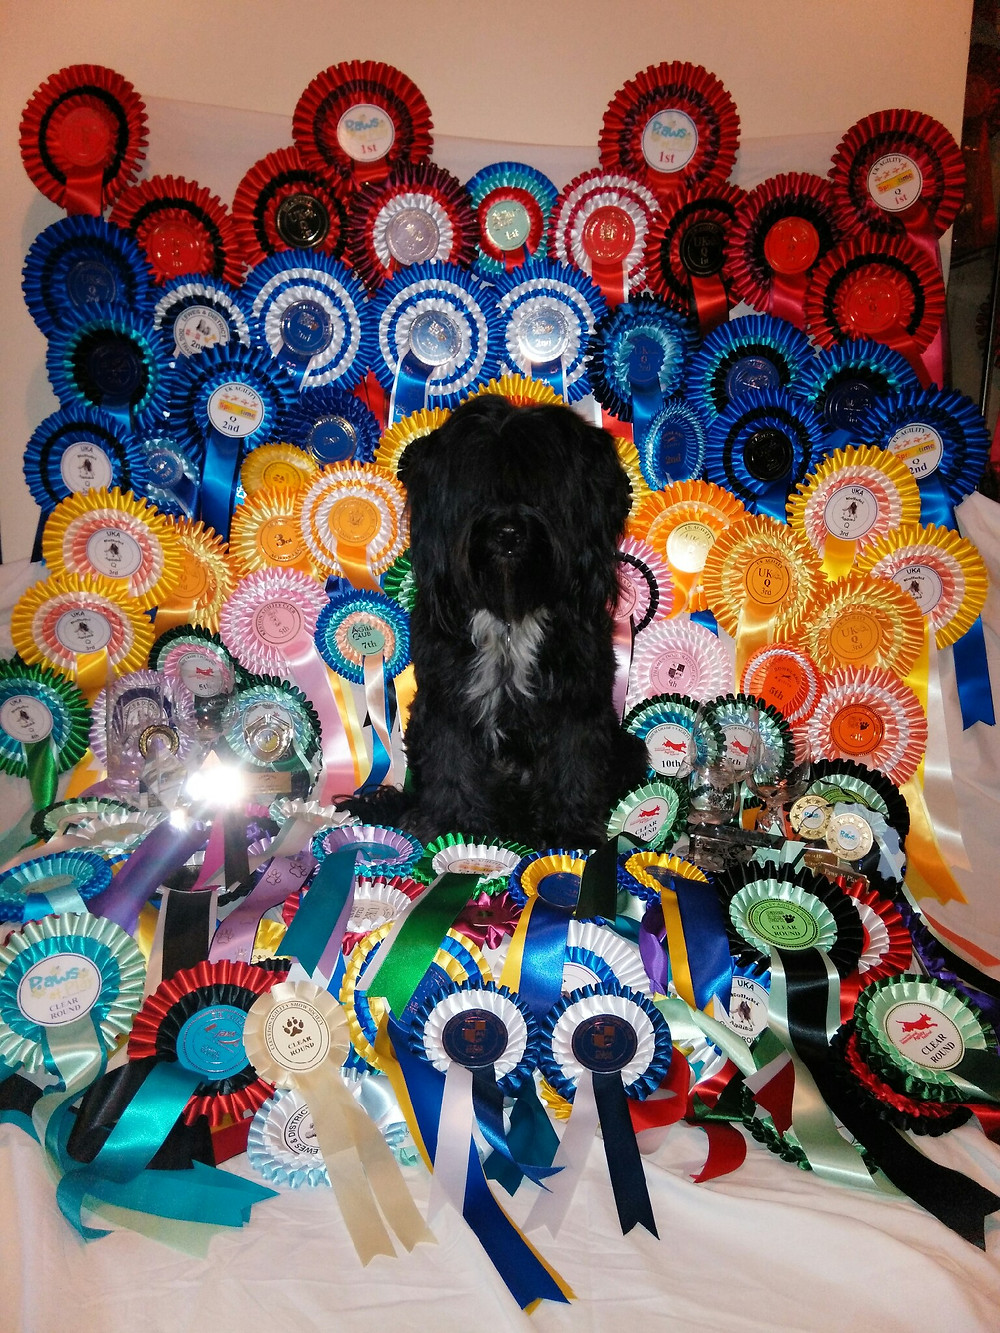 2015 Rosettes and Trophies